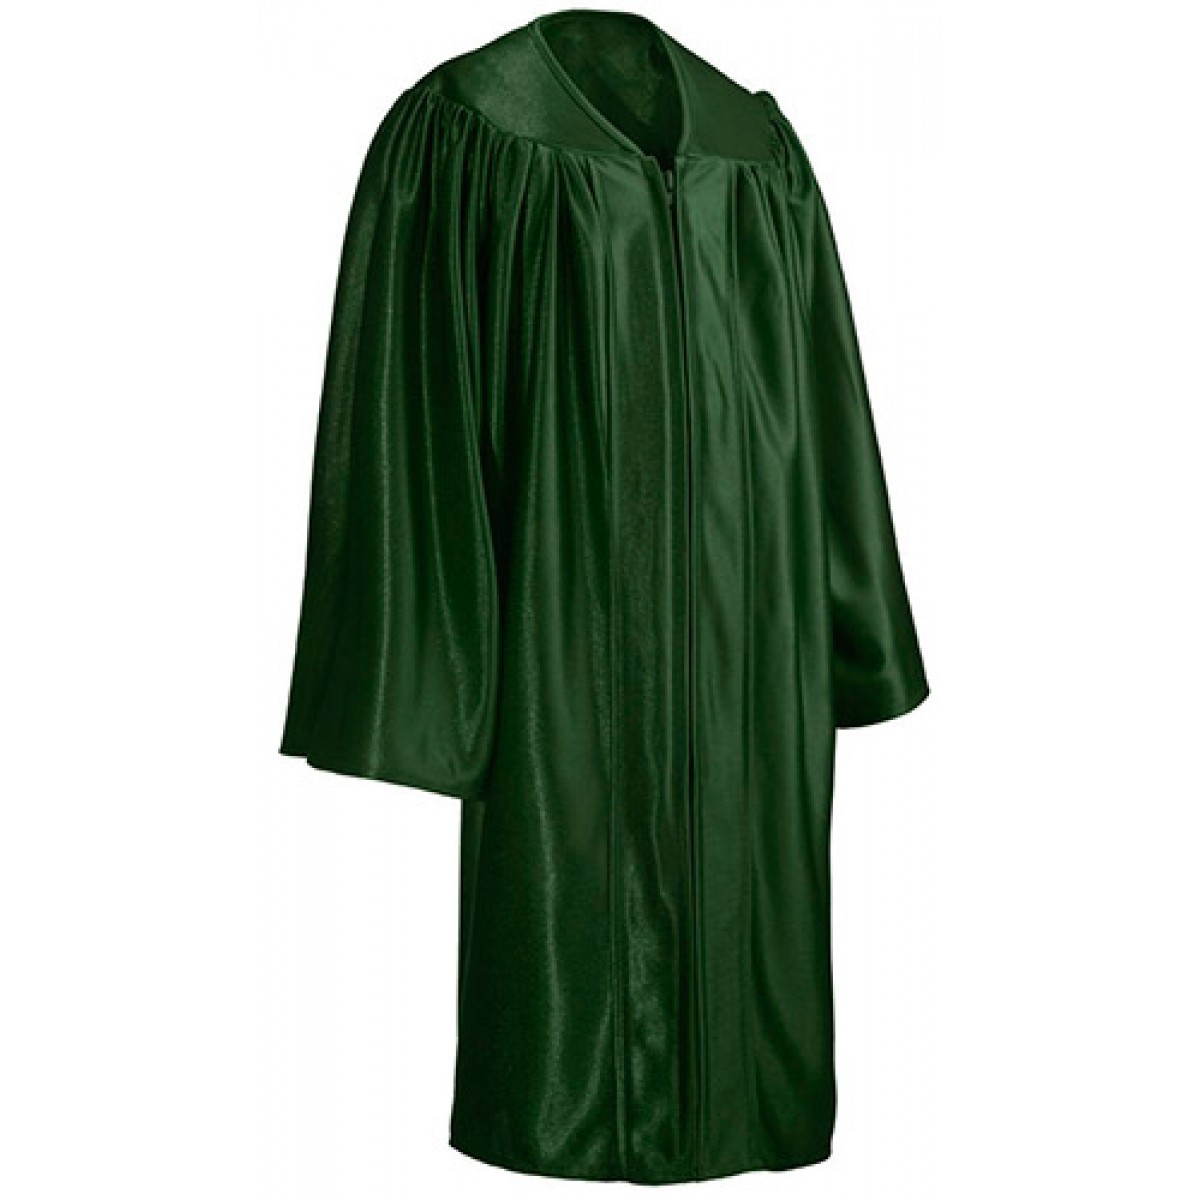 Child Shiny Forest Green Cap Gown Tassel Cool School Studios